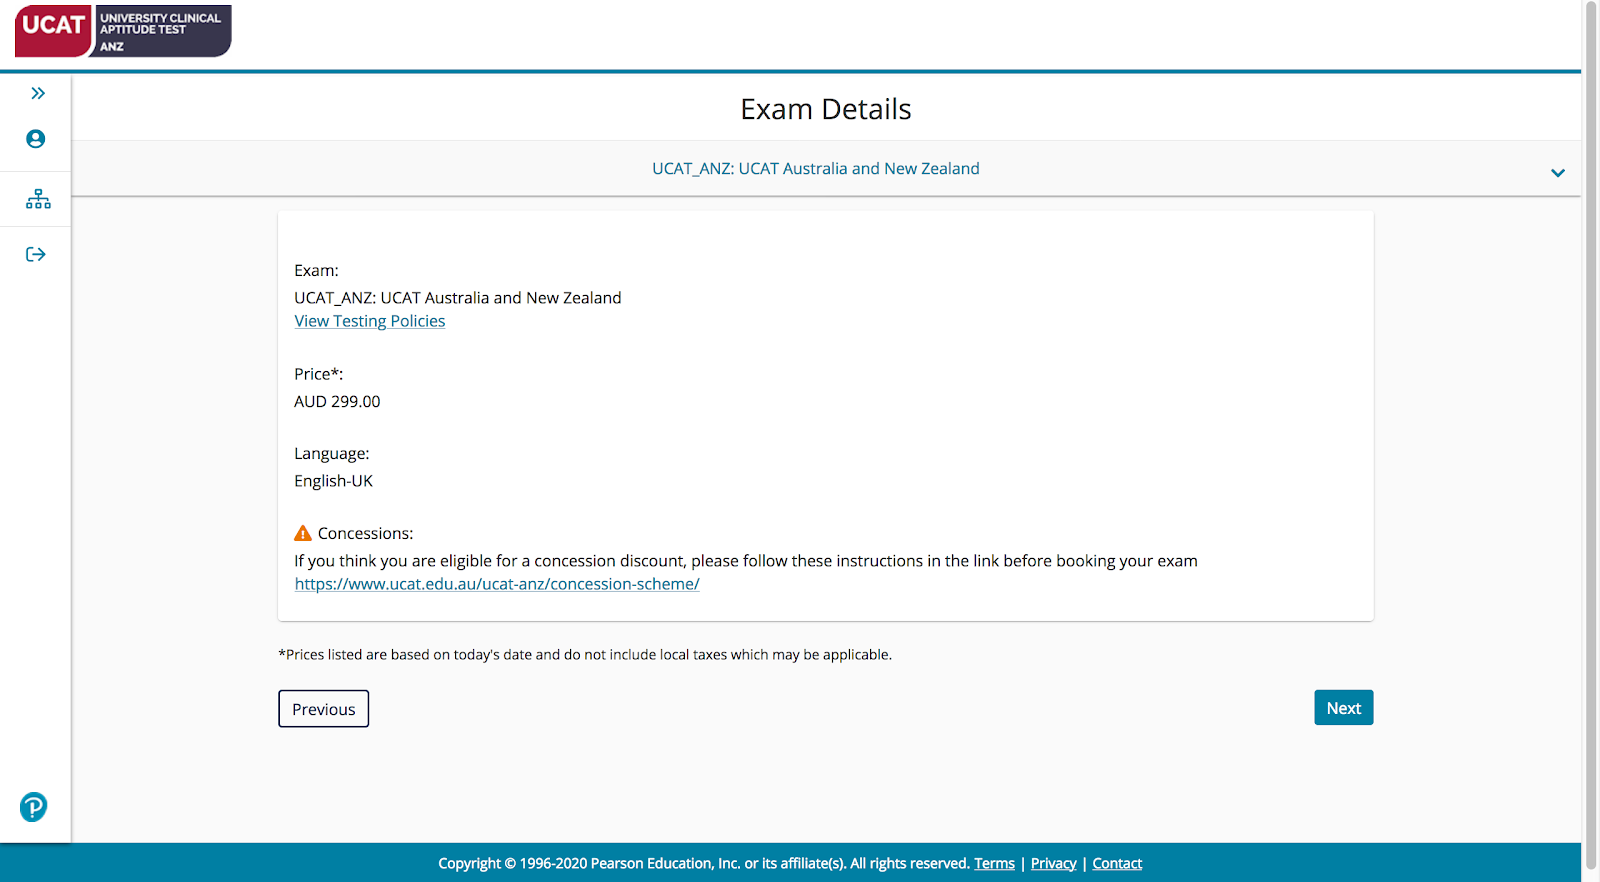 A screenshot showing exam details for the UCAT ANZ, including the price (AUD299), language (English-UK) and a link to the concession scheme.